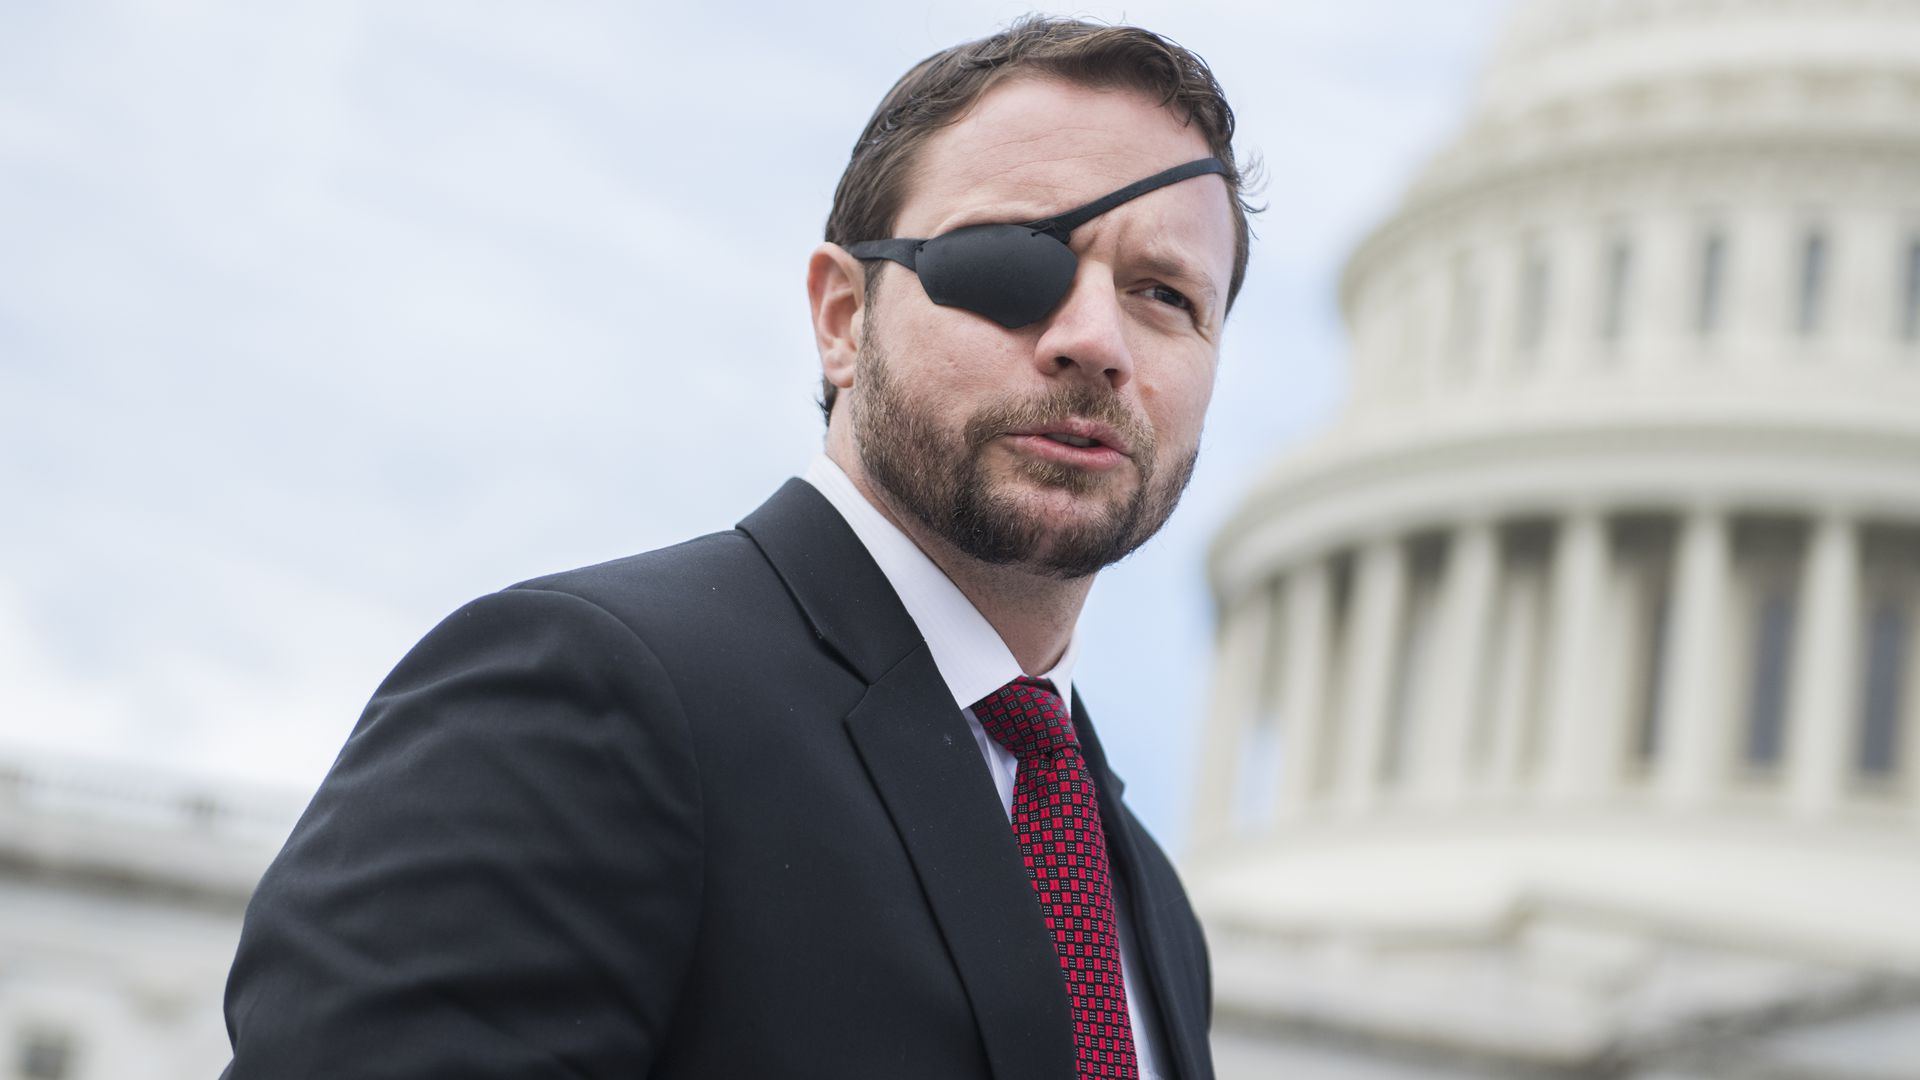 Dan Crenshaw himself.